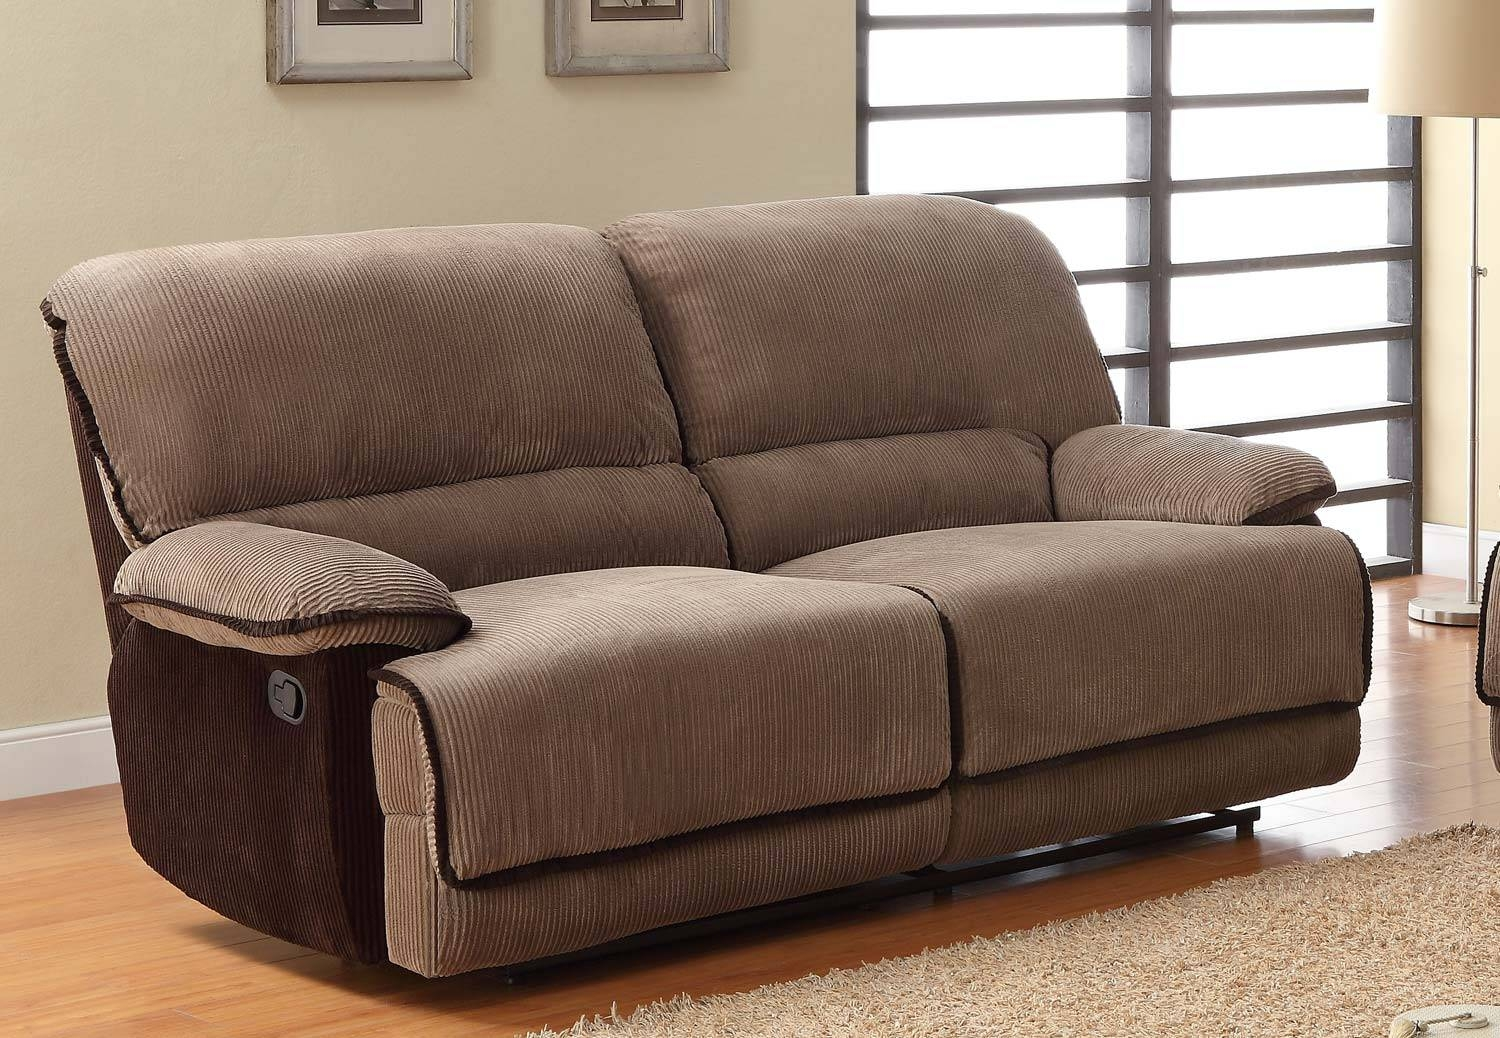 Homelegance Grantham Sofa Dual Recliner - Brown - Corduroy 9717-3 pertaining to Brown Corduroy Sofas (Image 8 of 15)